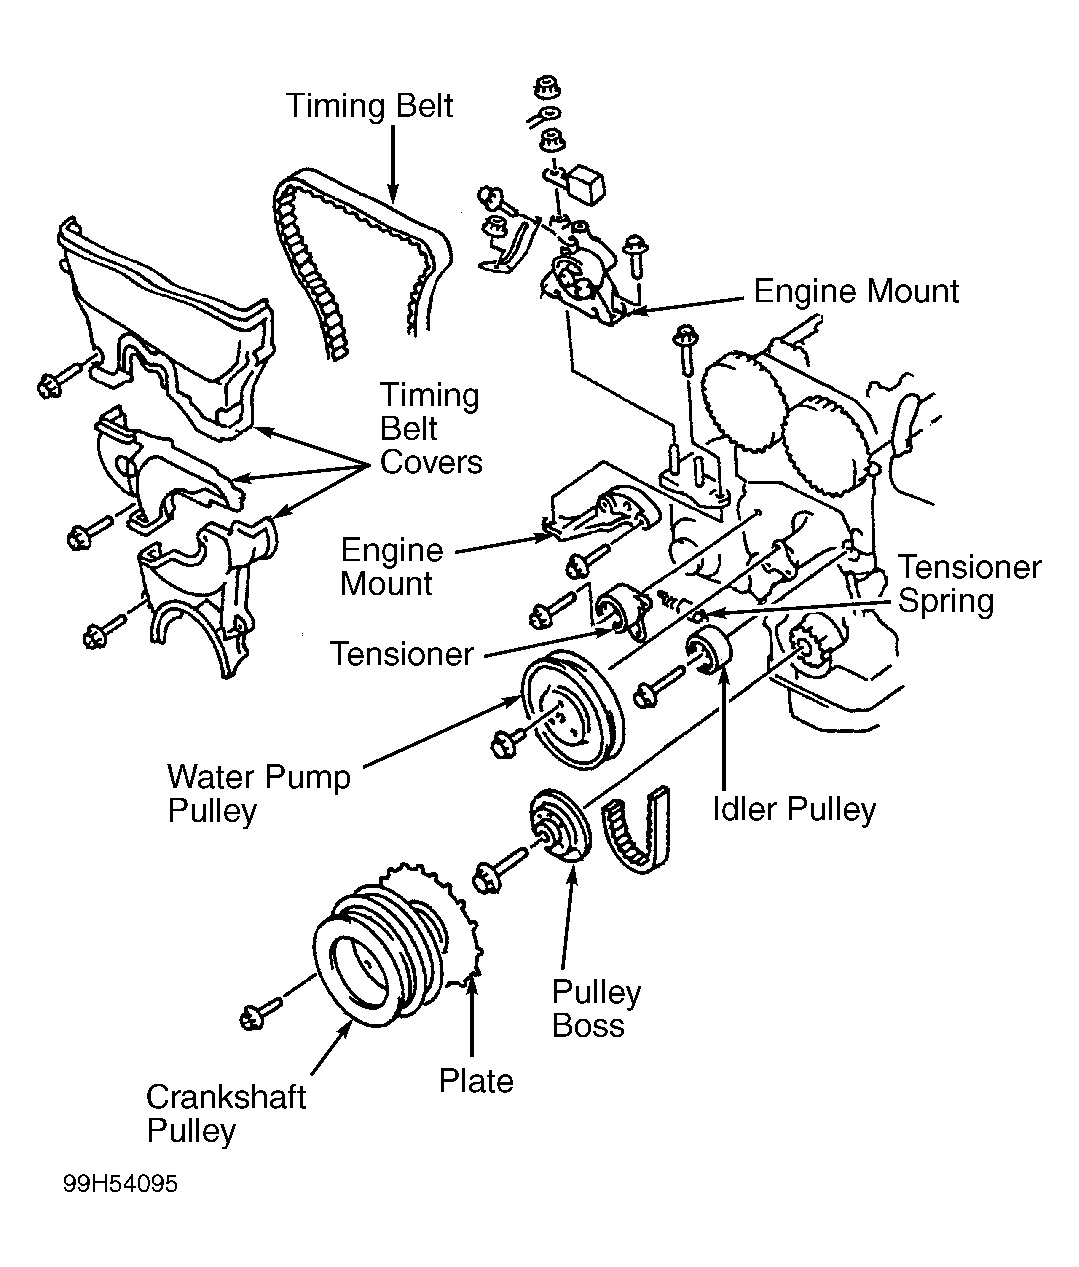 2001 Mazda Protege Engine Diagram Wiring Library. Mazda. 2001 Mazda 626 Exhaust System Diagram At Scoala.co